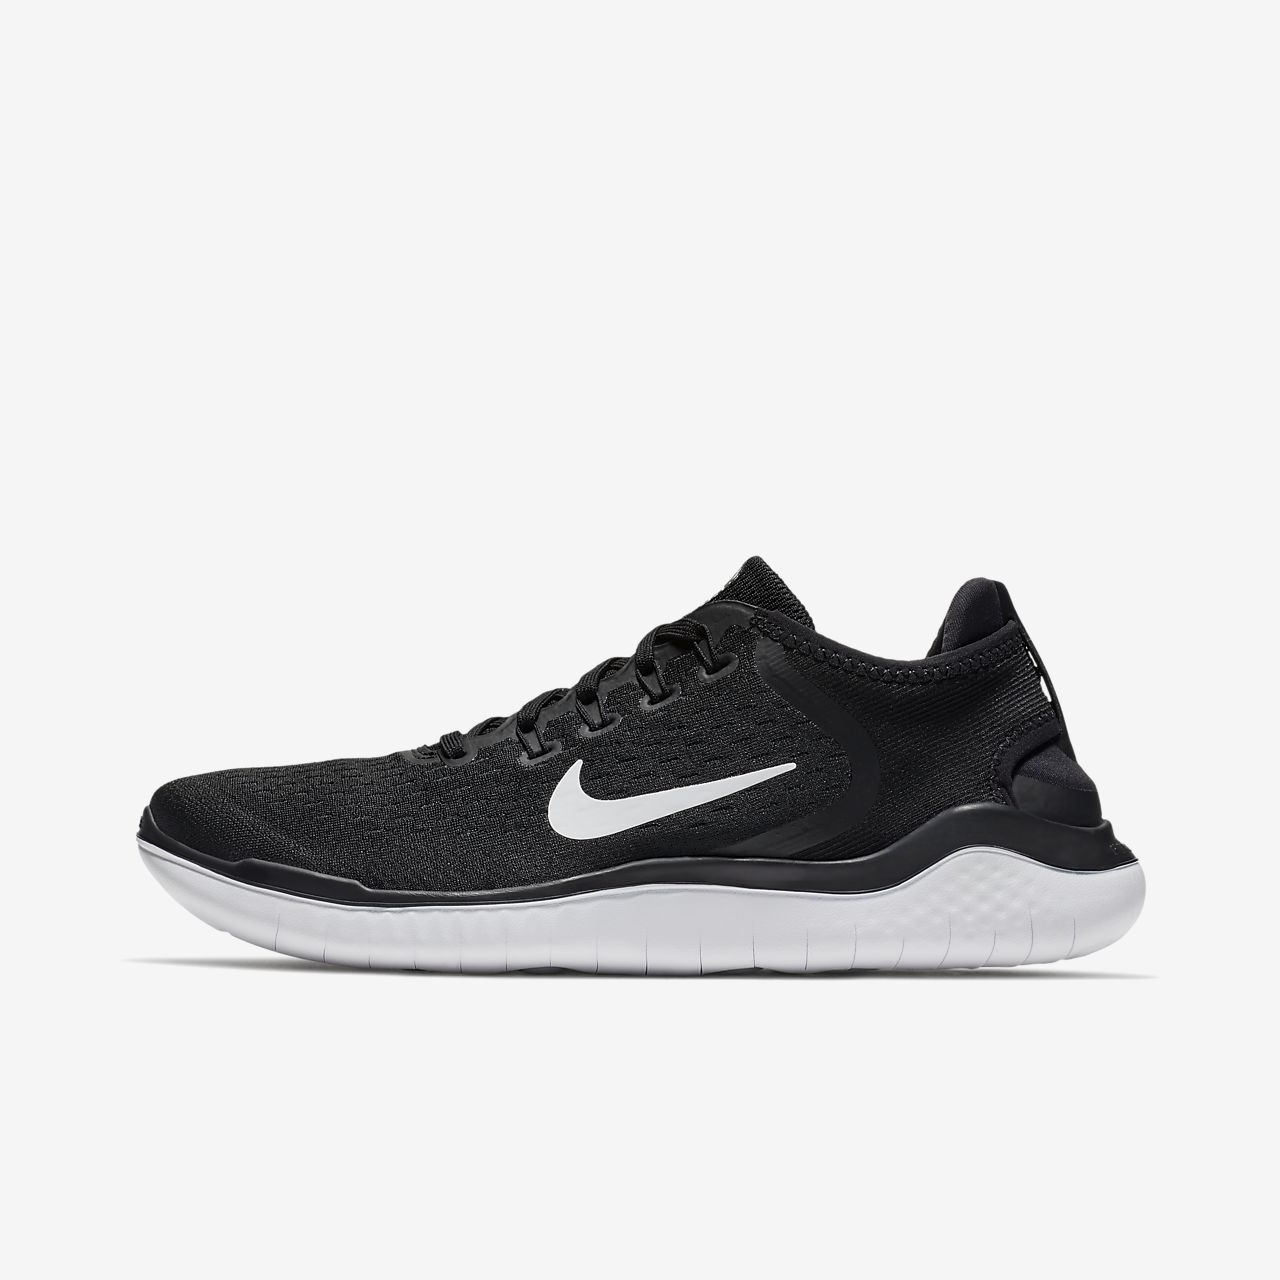 96e20d9635eb1 Nike Free RN 2018 Men s Running Shoe. Nike.com IN